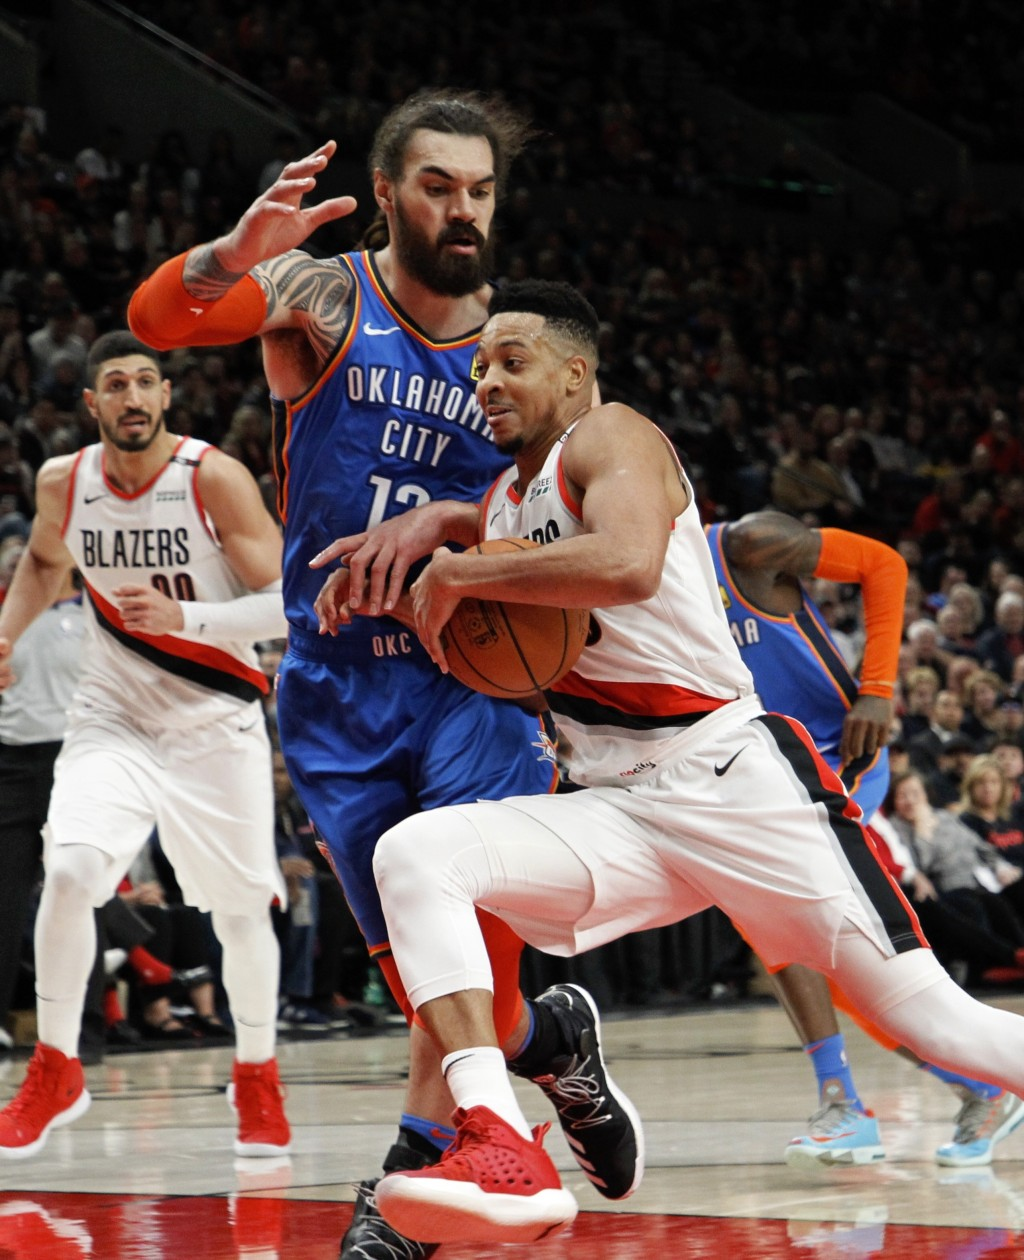 Portland Trail Blazers guard CJ McCollum, right, drives against Oklahoma City Thunder center Steven Adams, front left, during the second half of Game